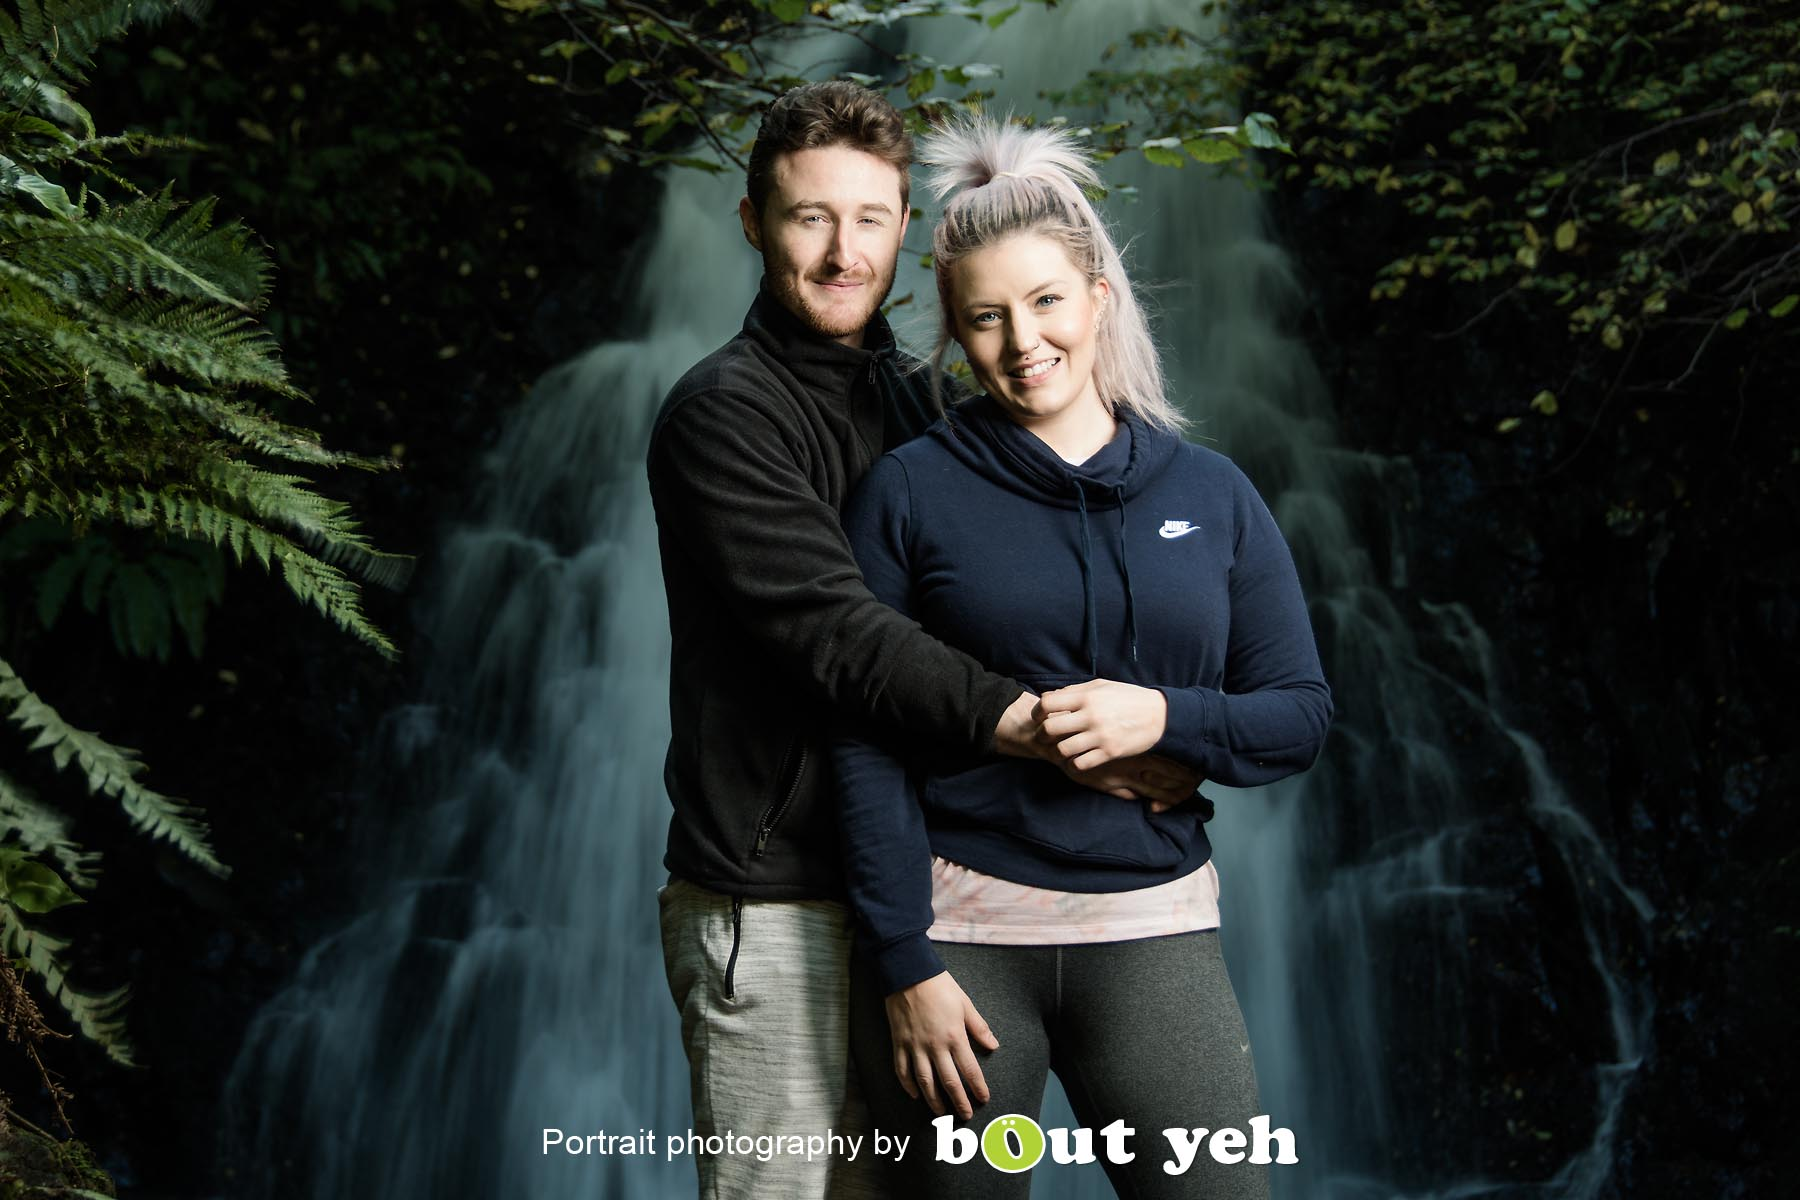 David and Joanna, at Gleno Waterfall, Northern Ireland - photo 9013.